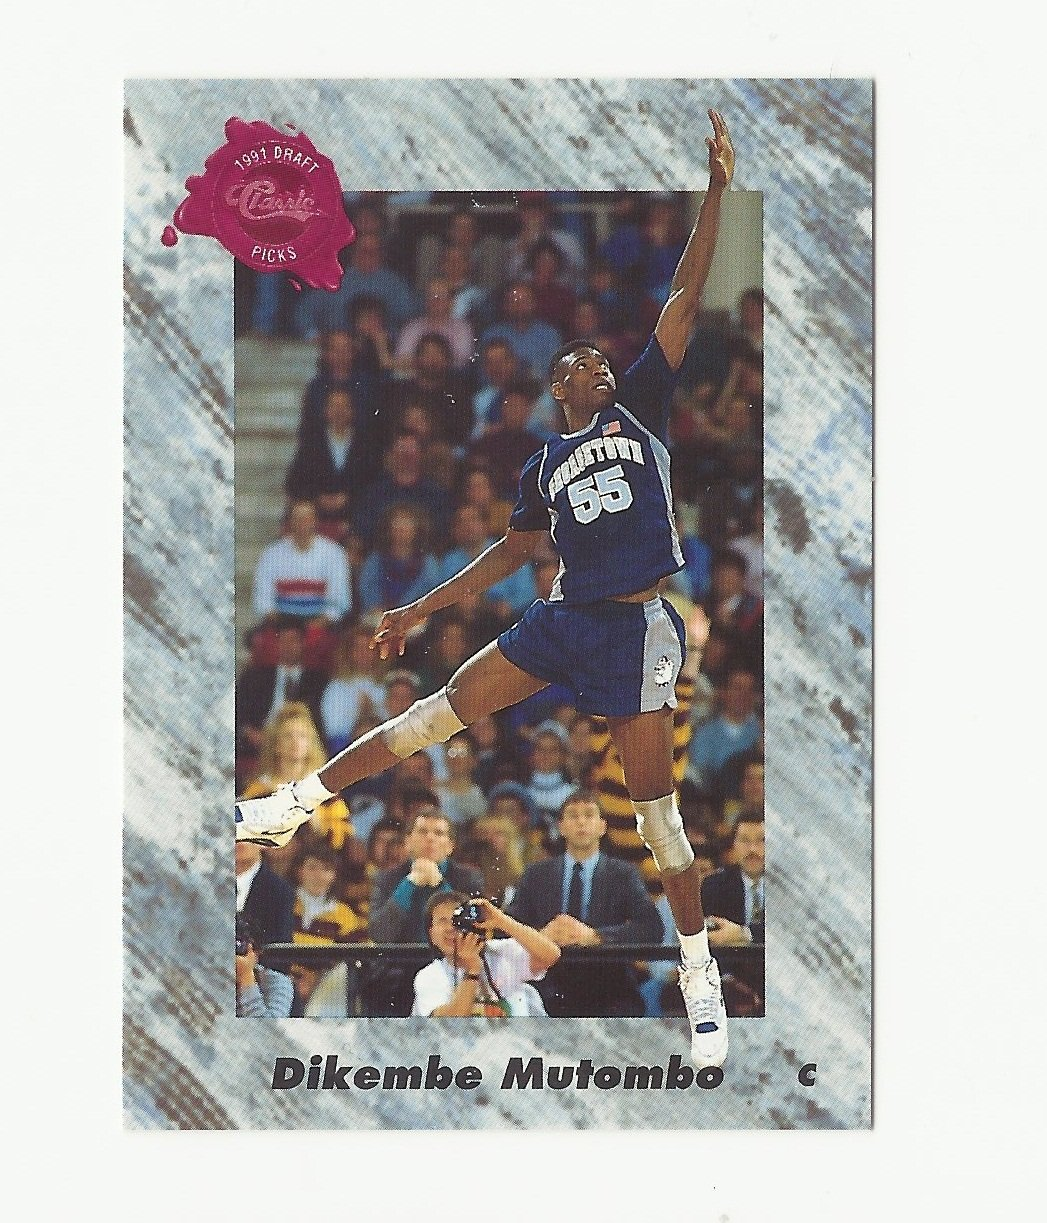 Dikembe Mutombo 1991 Classic Draft Picks Rookie Card #151 Denver Nuggets